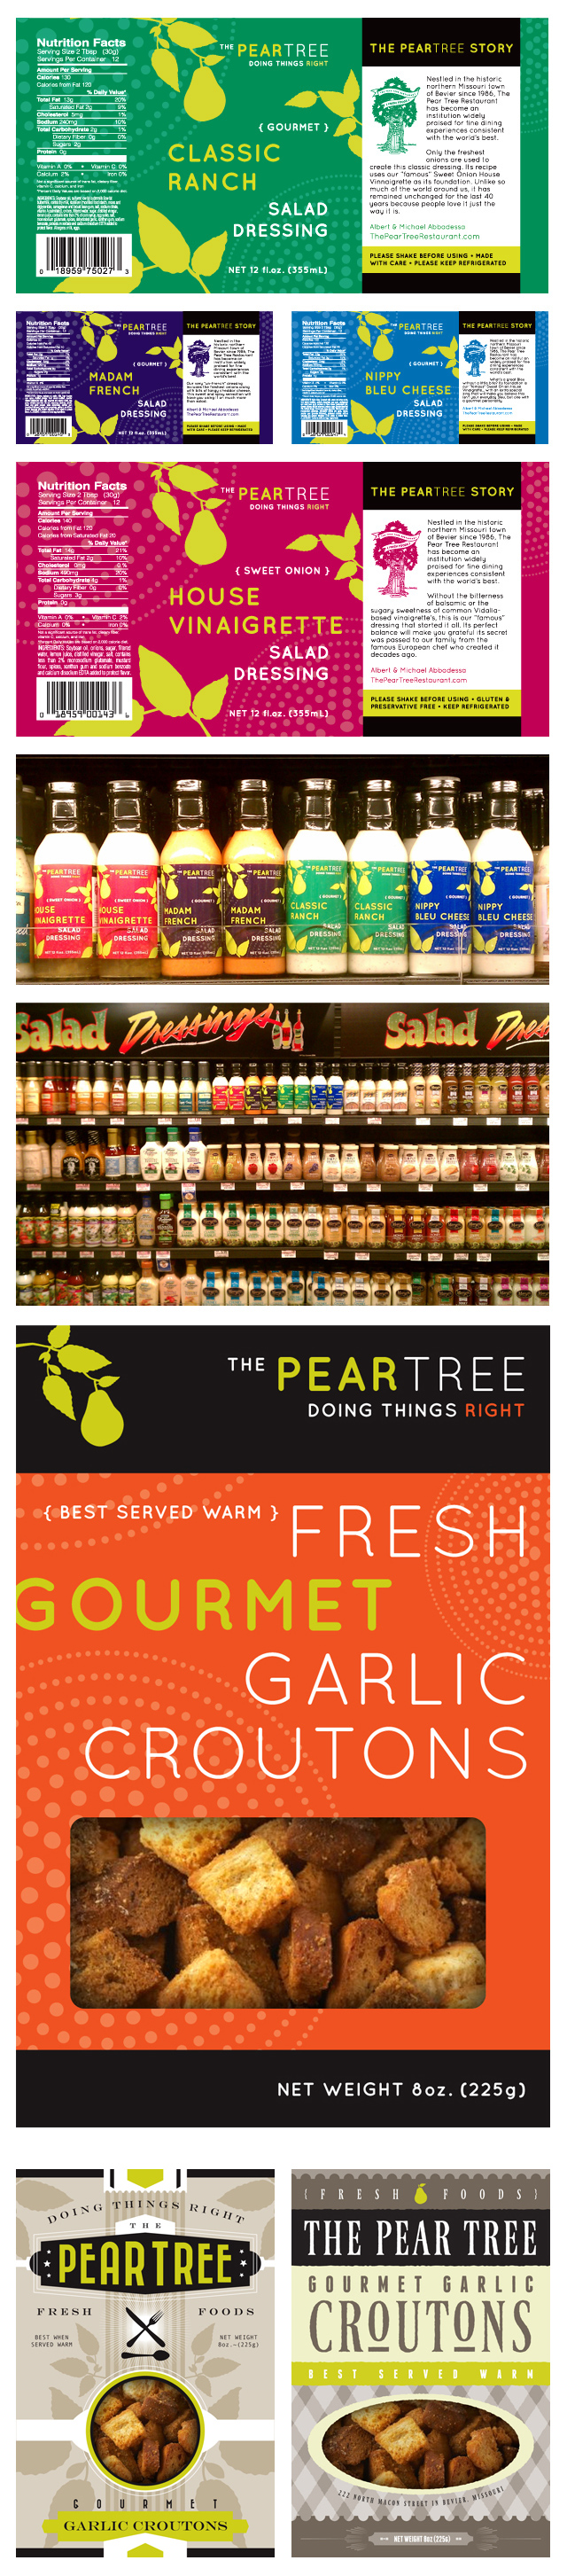 peartree_dressing_full_blog